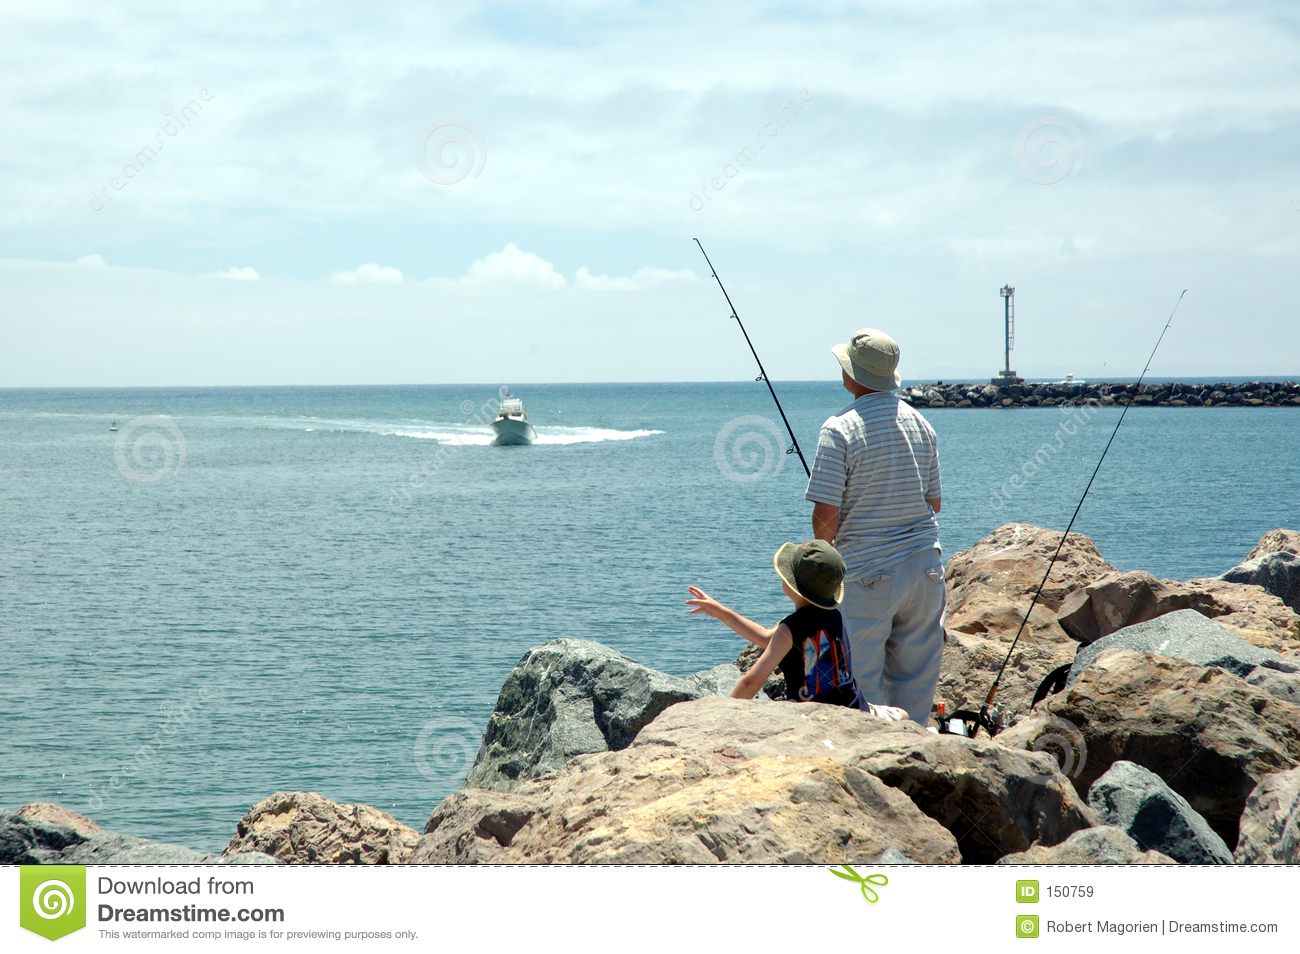 Dad and son 1 fishing at beach